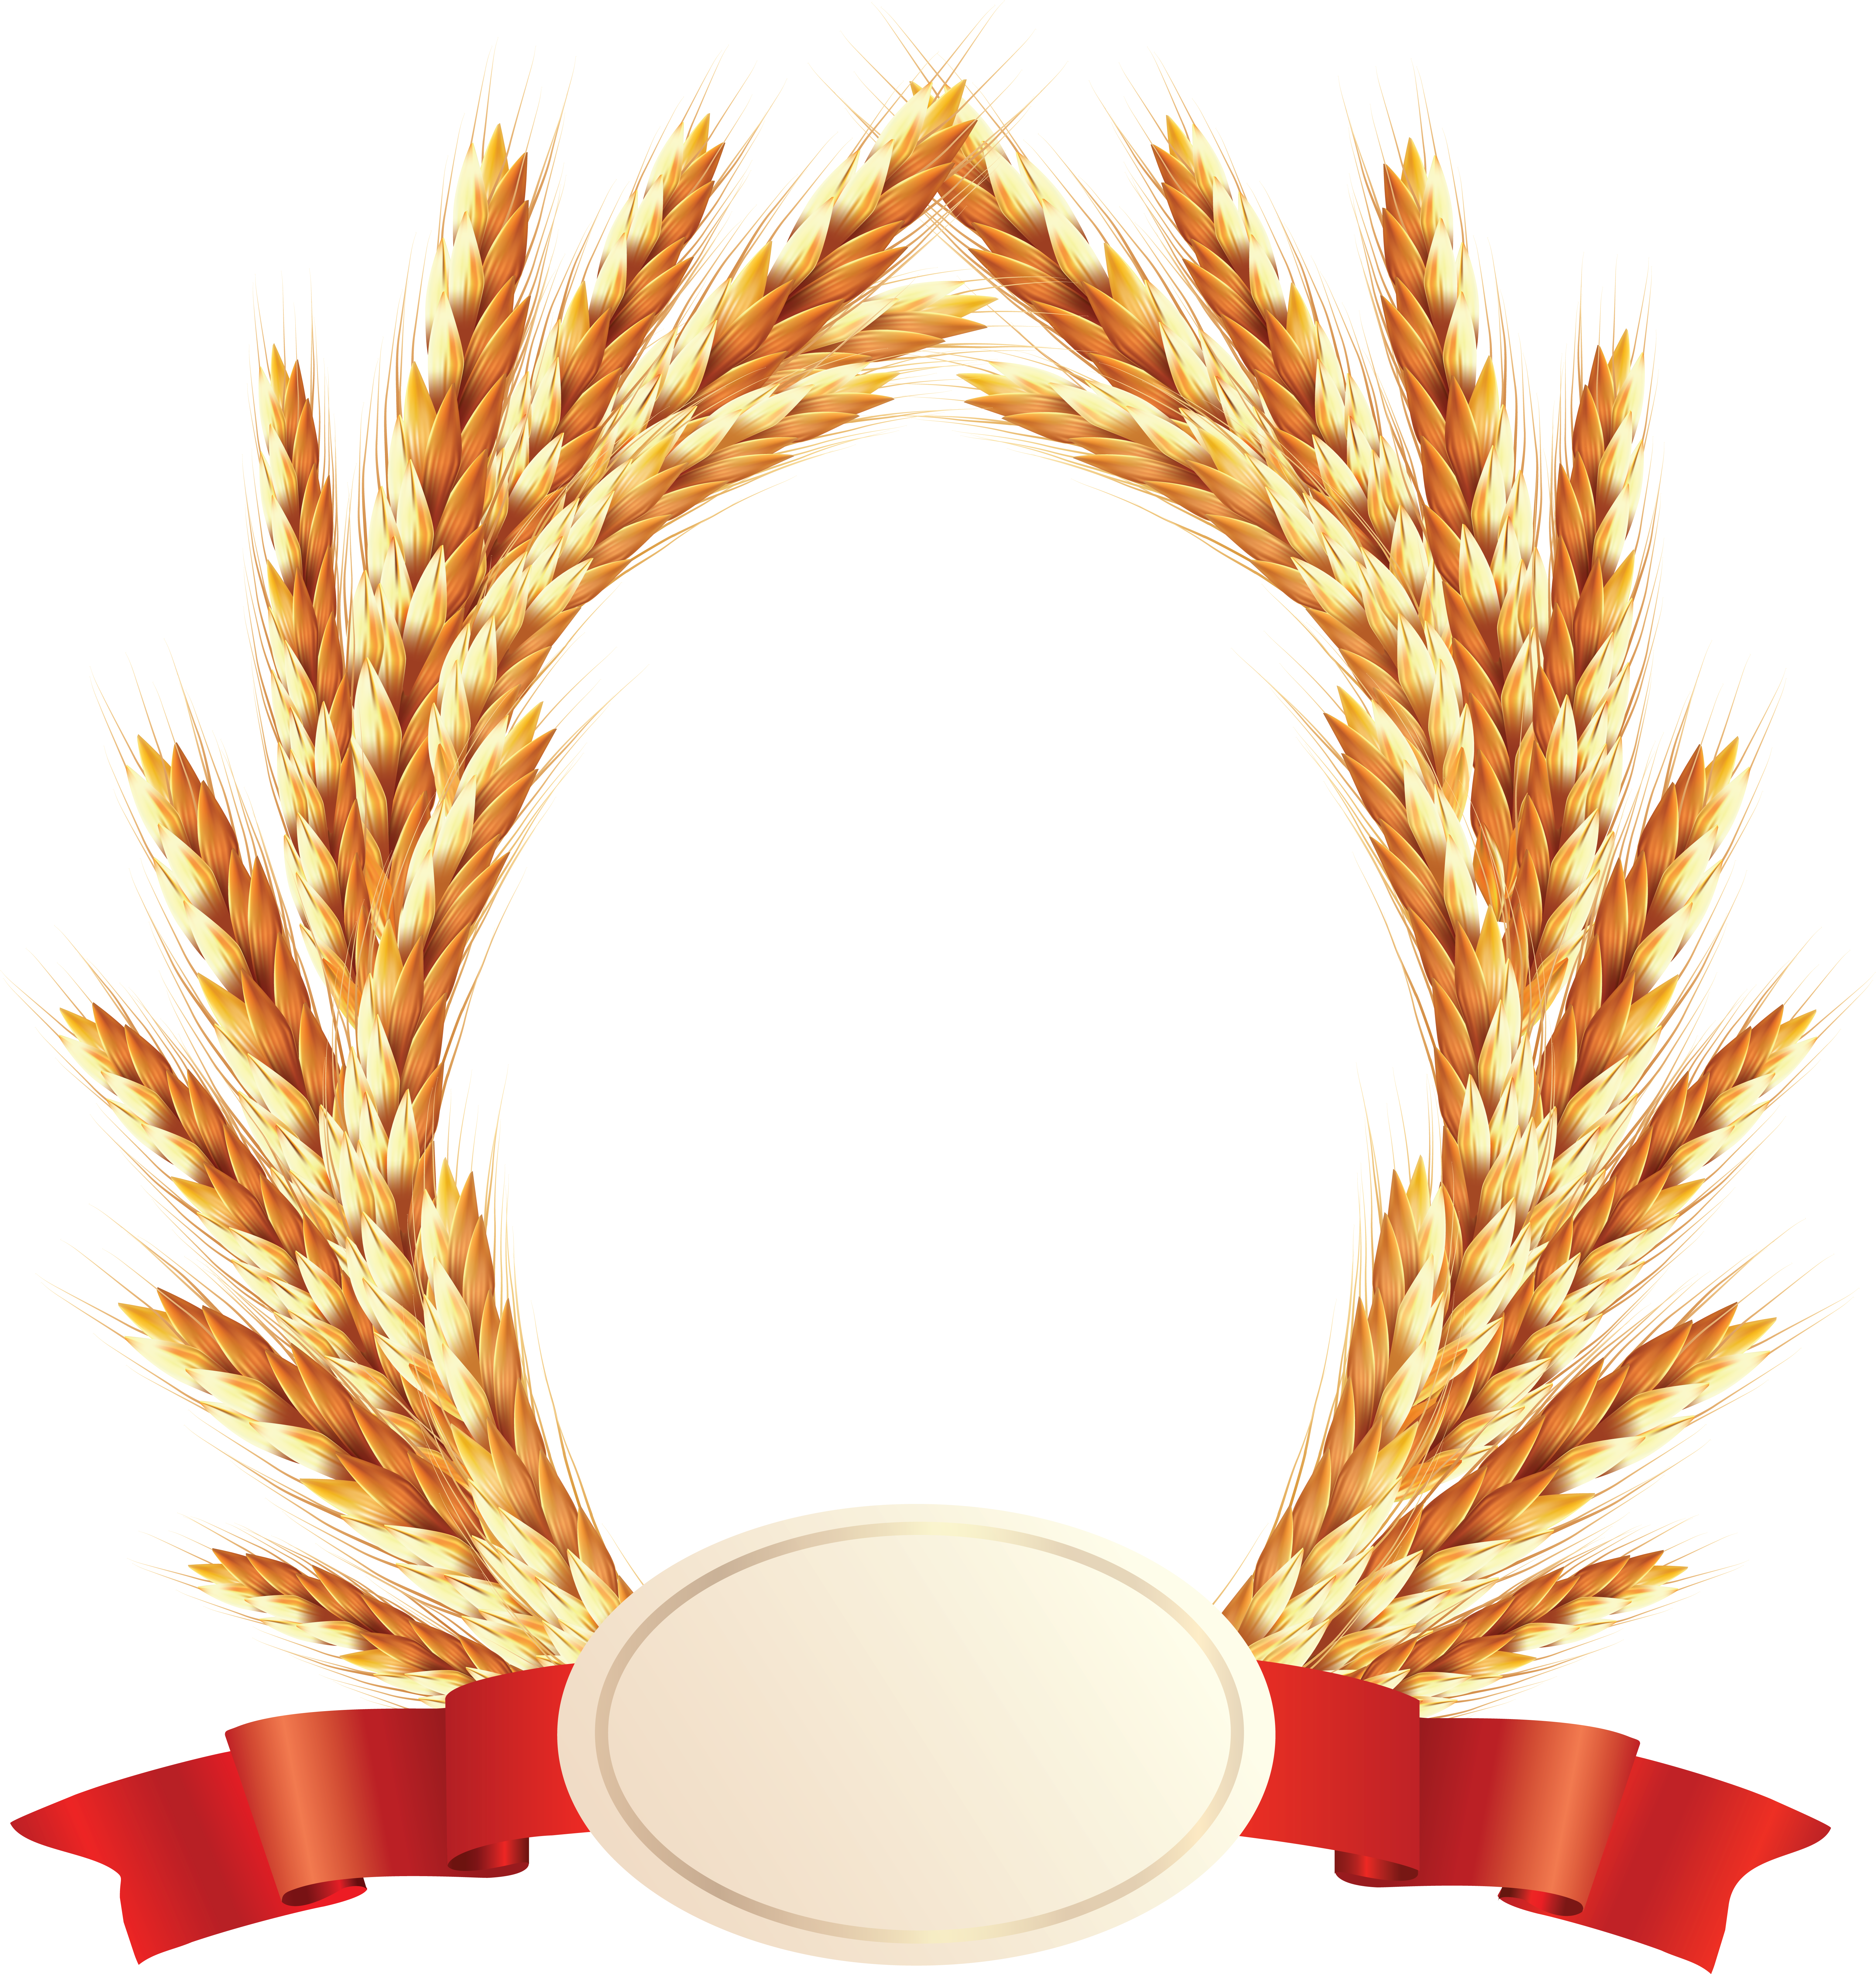 Png image purepng free. Wheat clipart decoration